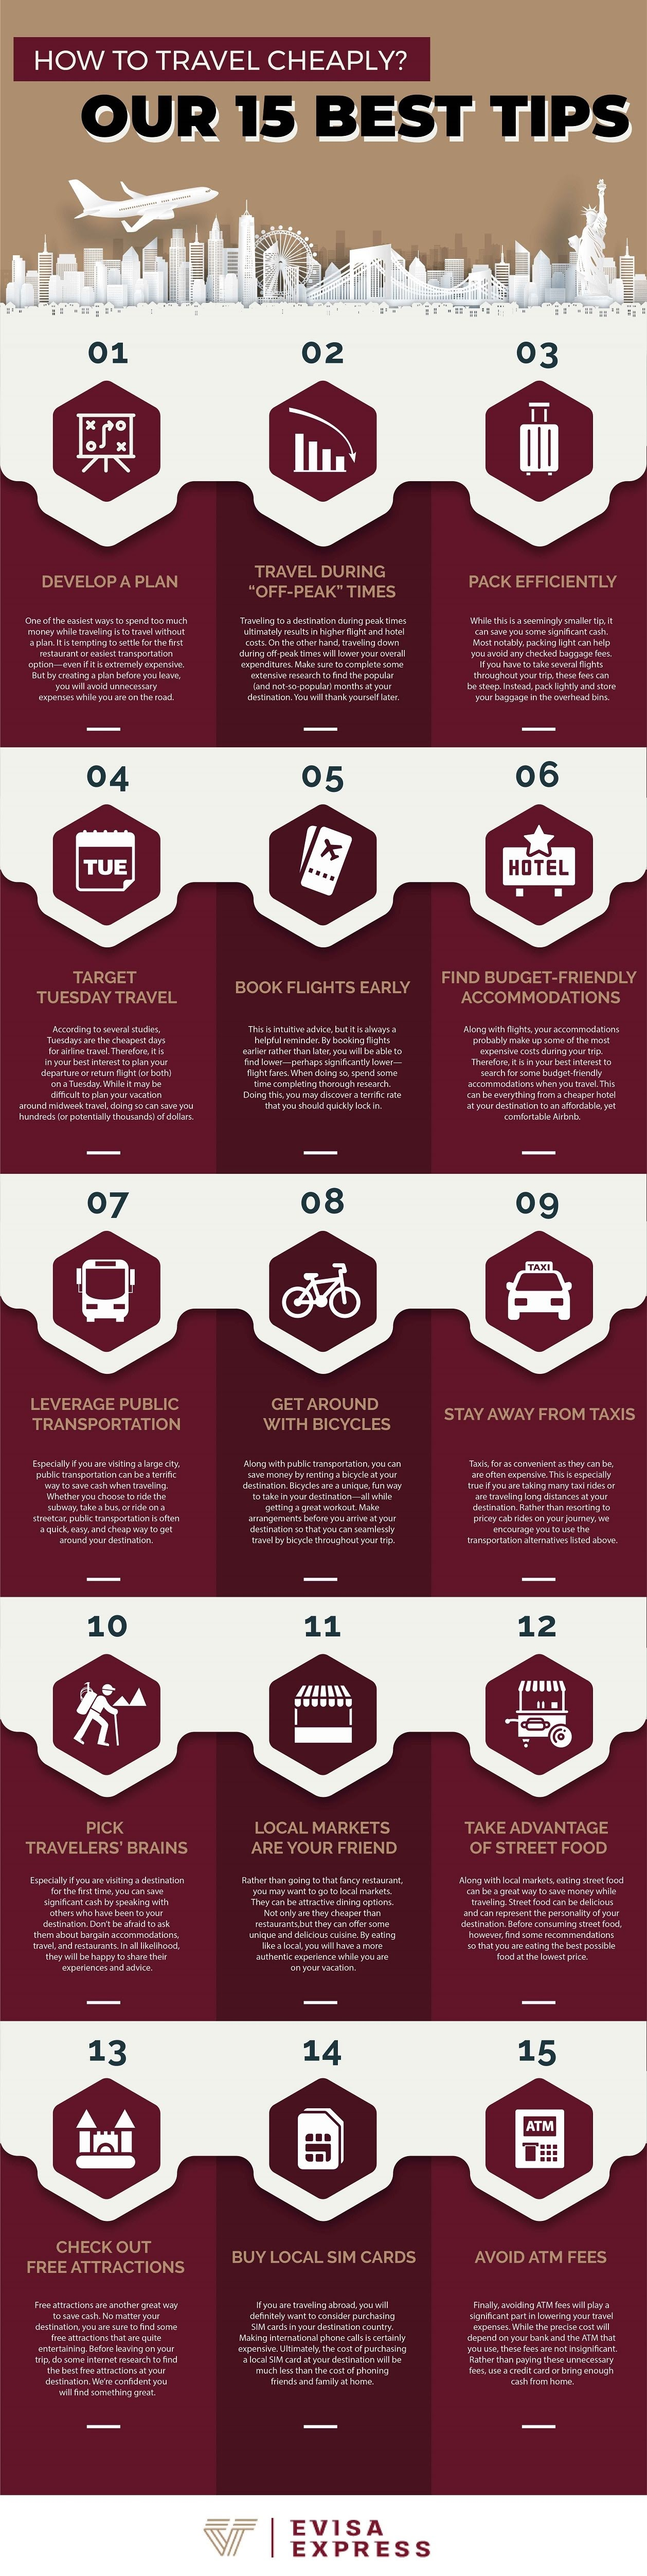 How to Travel Cheap? Our 15 Best Tips #infographic